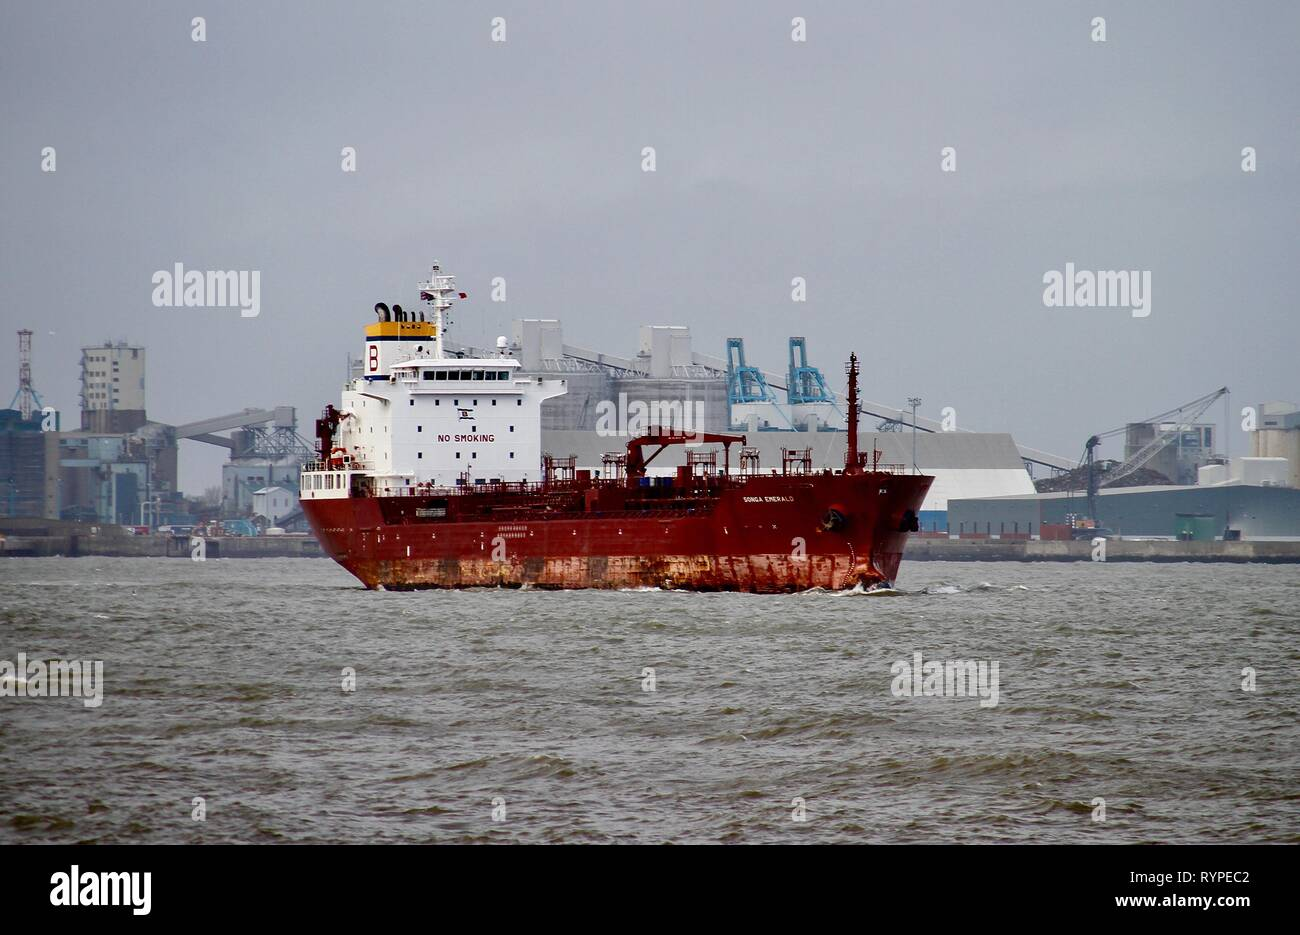 Liverpool, UK. 14th Mar, 2019. Boats back on river mersey after storm Gareth cancelled all sailing 24 hours earlier Credit: IAN Fairbrother/Alamy Live News - Stock Image